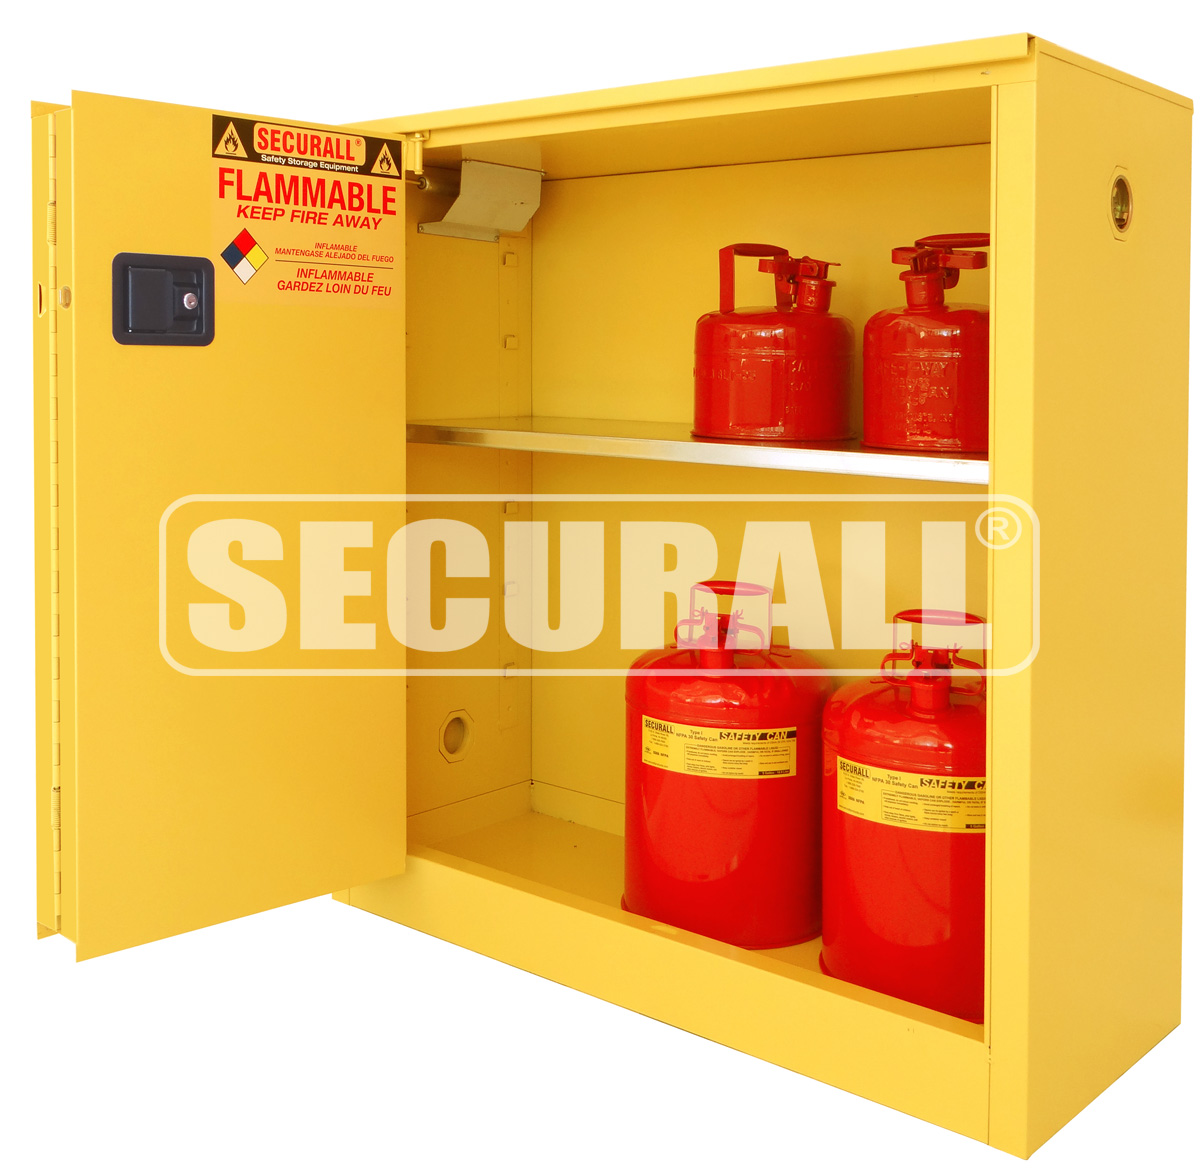 Charmant 30 GAL FLAMMABLE STORAGE CABINETS